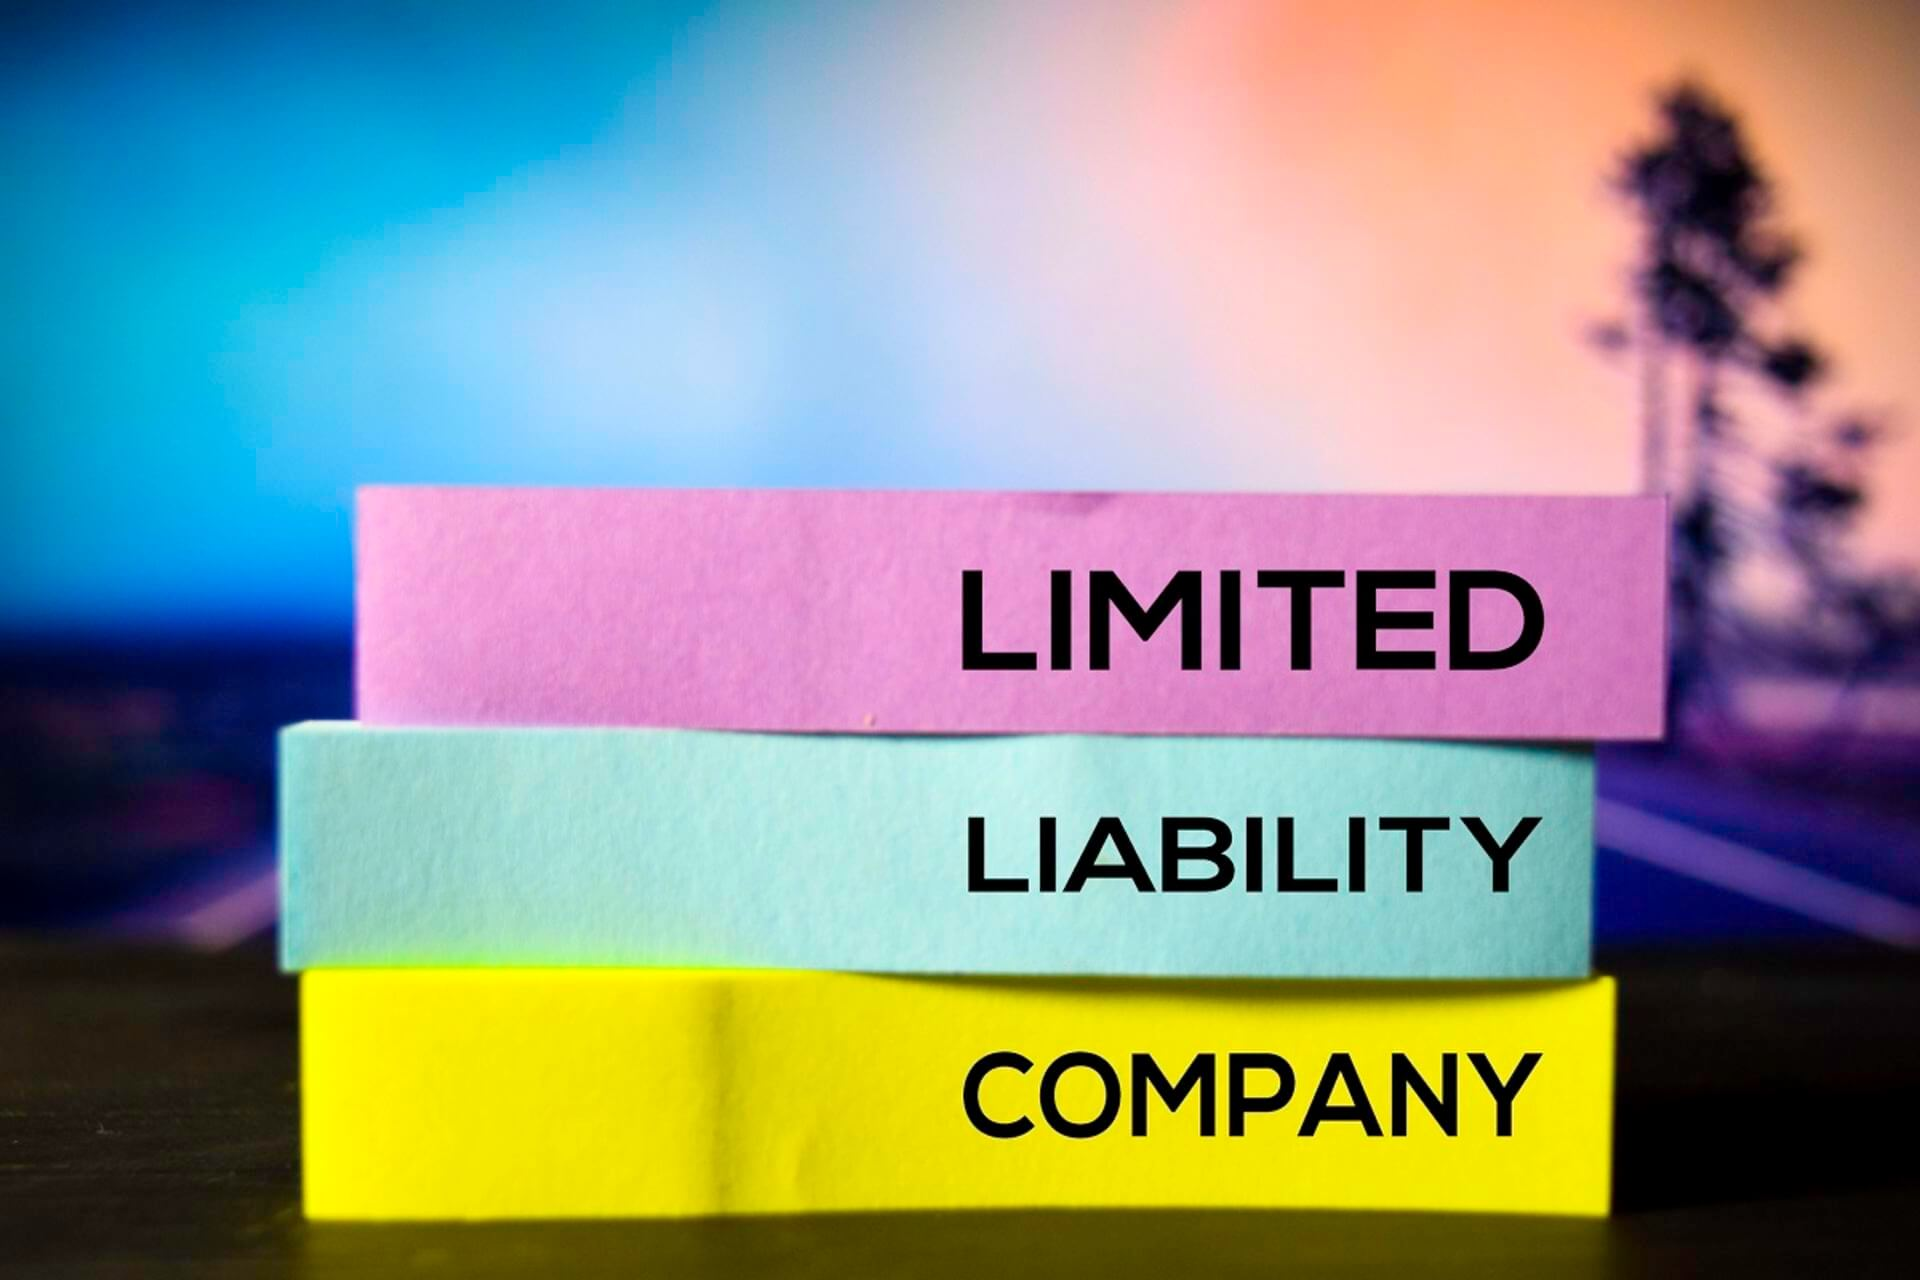 Limited Liability Company in Nigeria